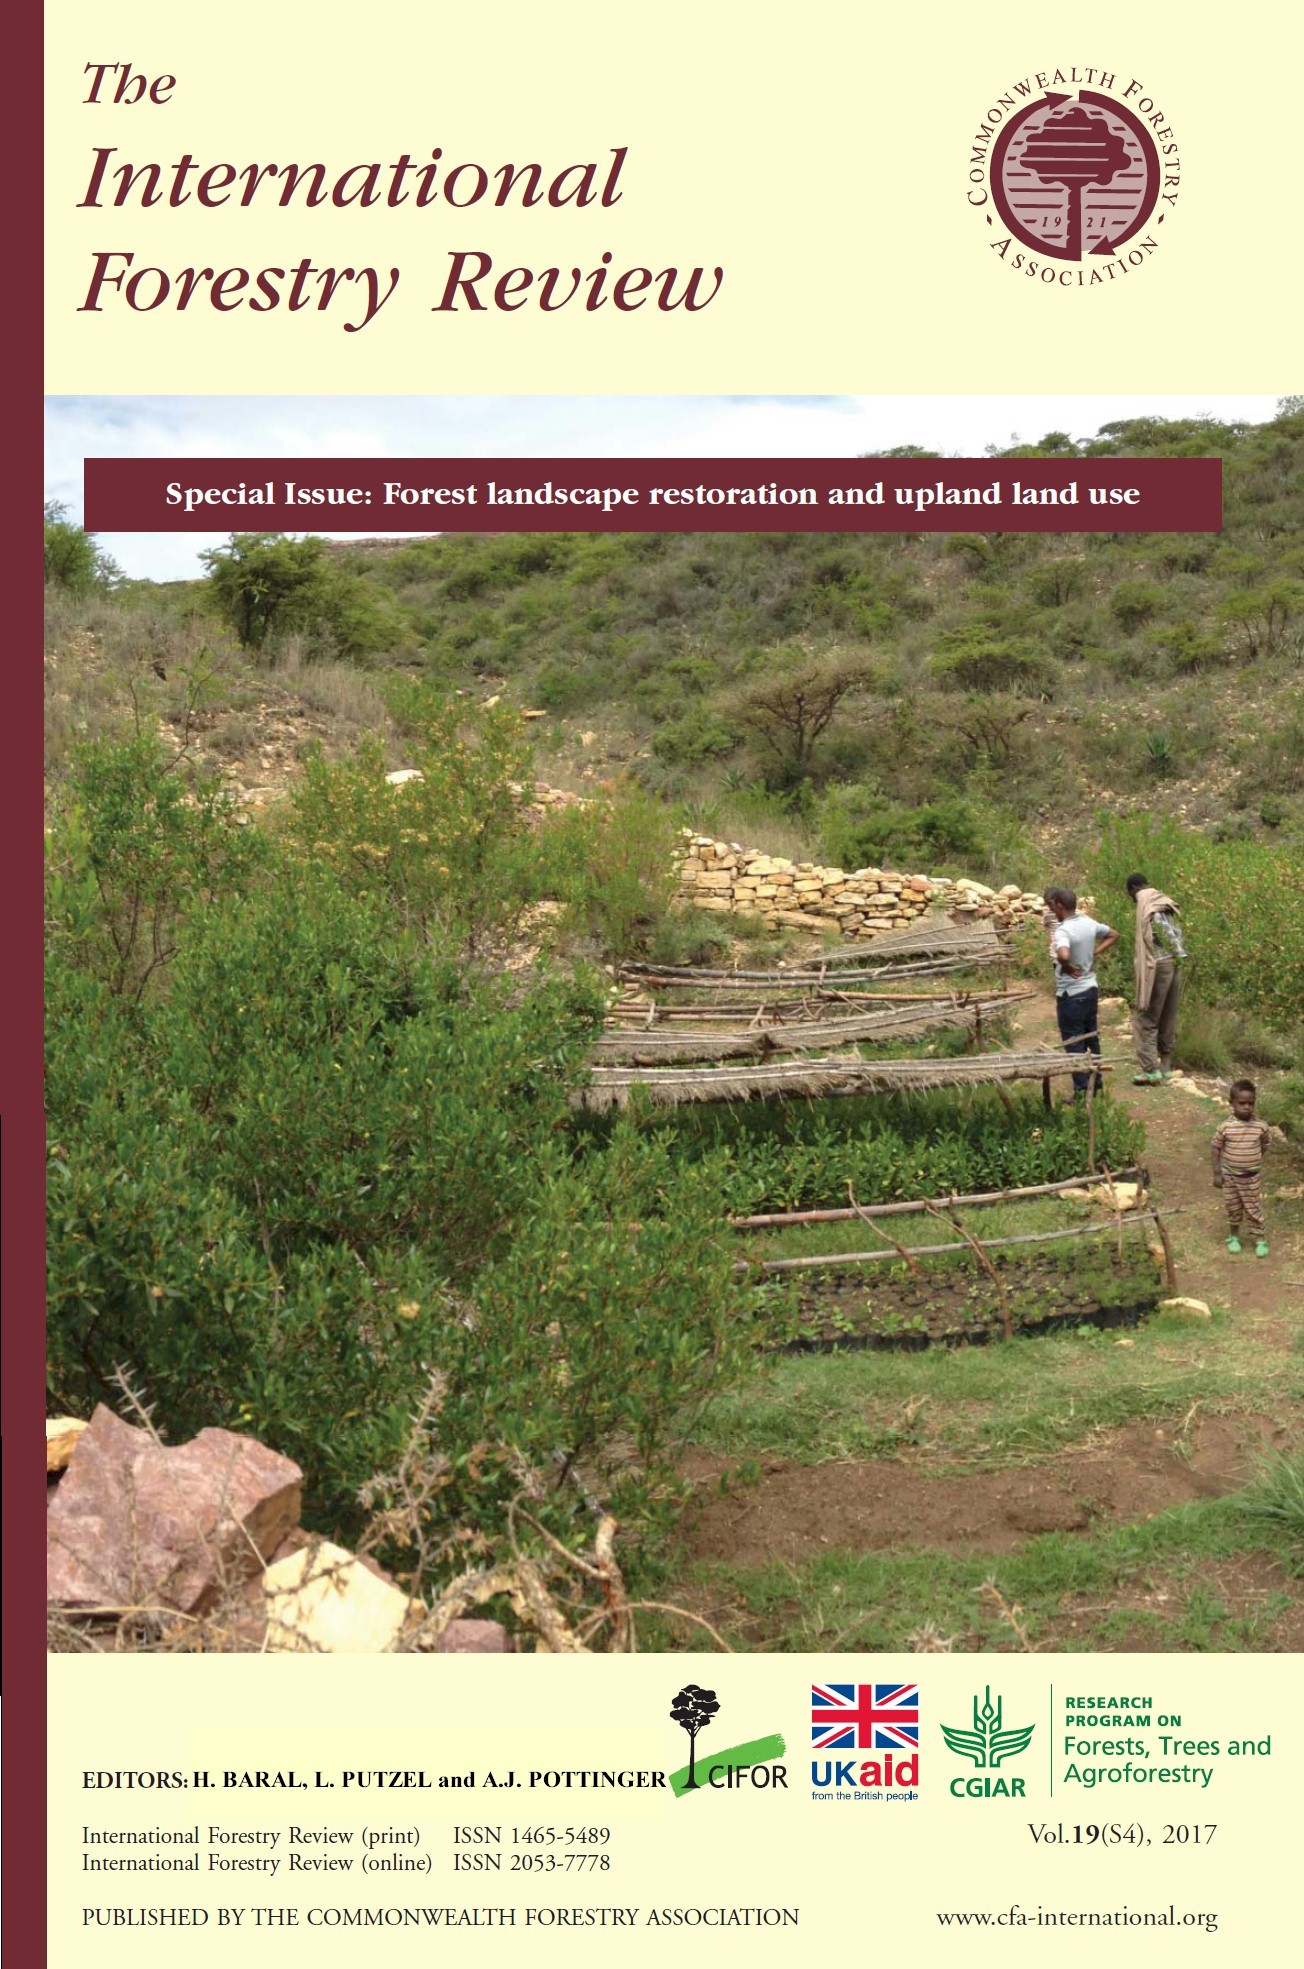 Shared strengths and limitations of participatory forest management and area exclosure: two major state led landscape rehabilitation mechanisms in Ethiopia